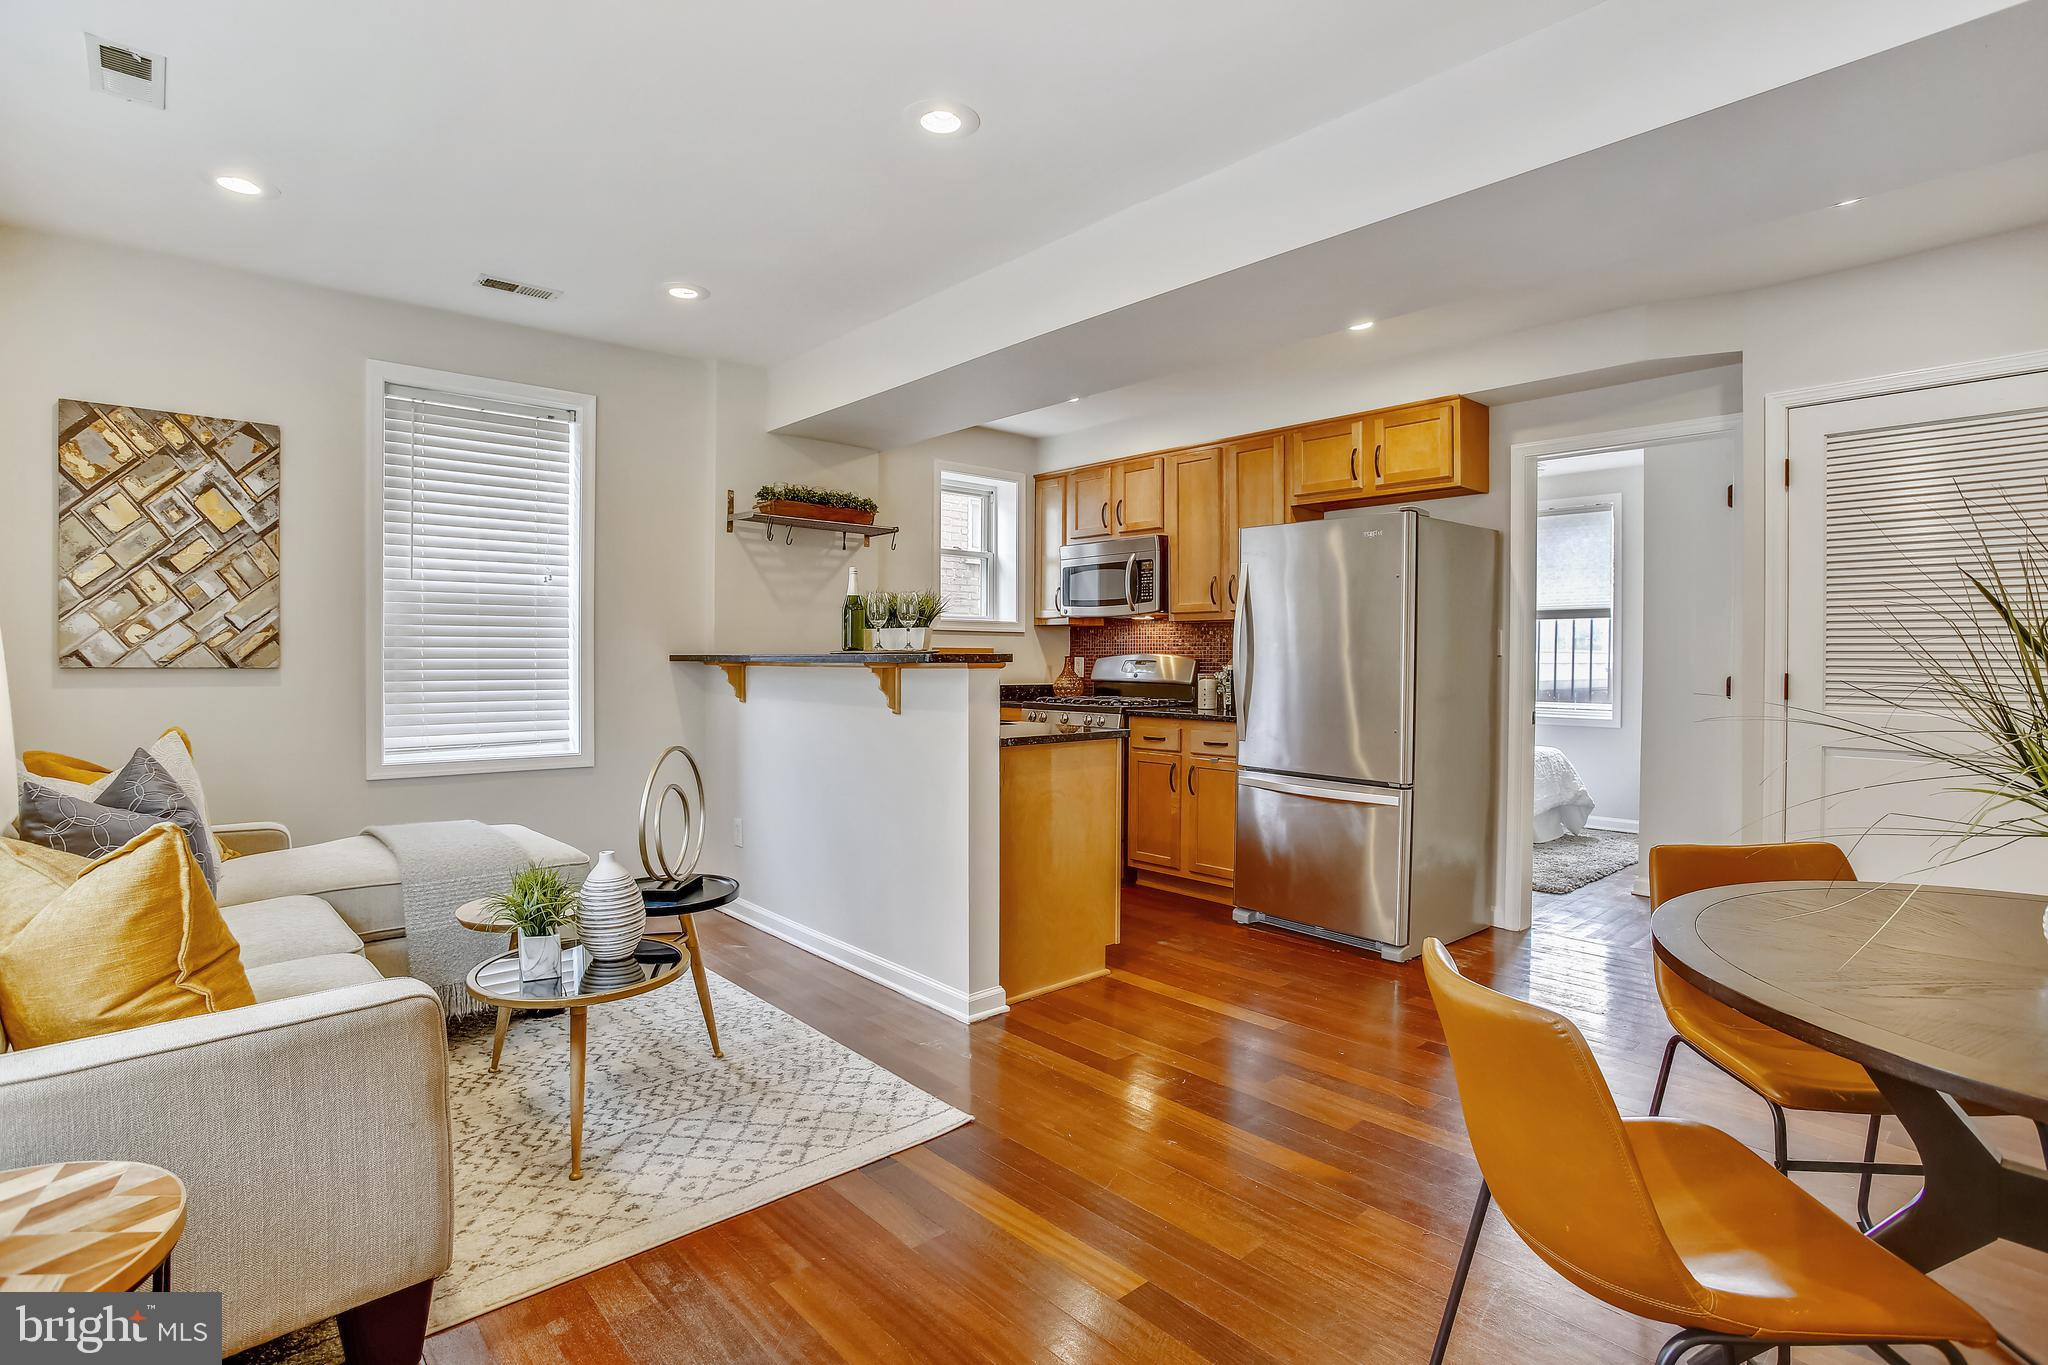 Discover the best in DC condo life! 2BR/1BA home located in historic Eckington. 617 square feet of light-drenched, open living space. Wood floors, stylish kitchen, in-unit washer/dryer, internal A/C, back porch for pleasant mornings and evenings. Live just a pleasant stroll from Union Market, bars and cafes, shopping and dining, major city bus routes, and a Red Line Metro station. Everything you could possibly want from an urban experience is right here at your fingertips. Come check it out for yourself! <b>OPEN HOUSE SUN 1-4</b>